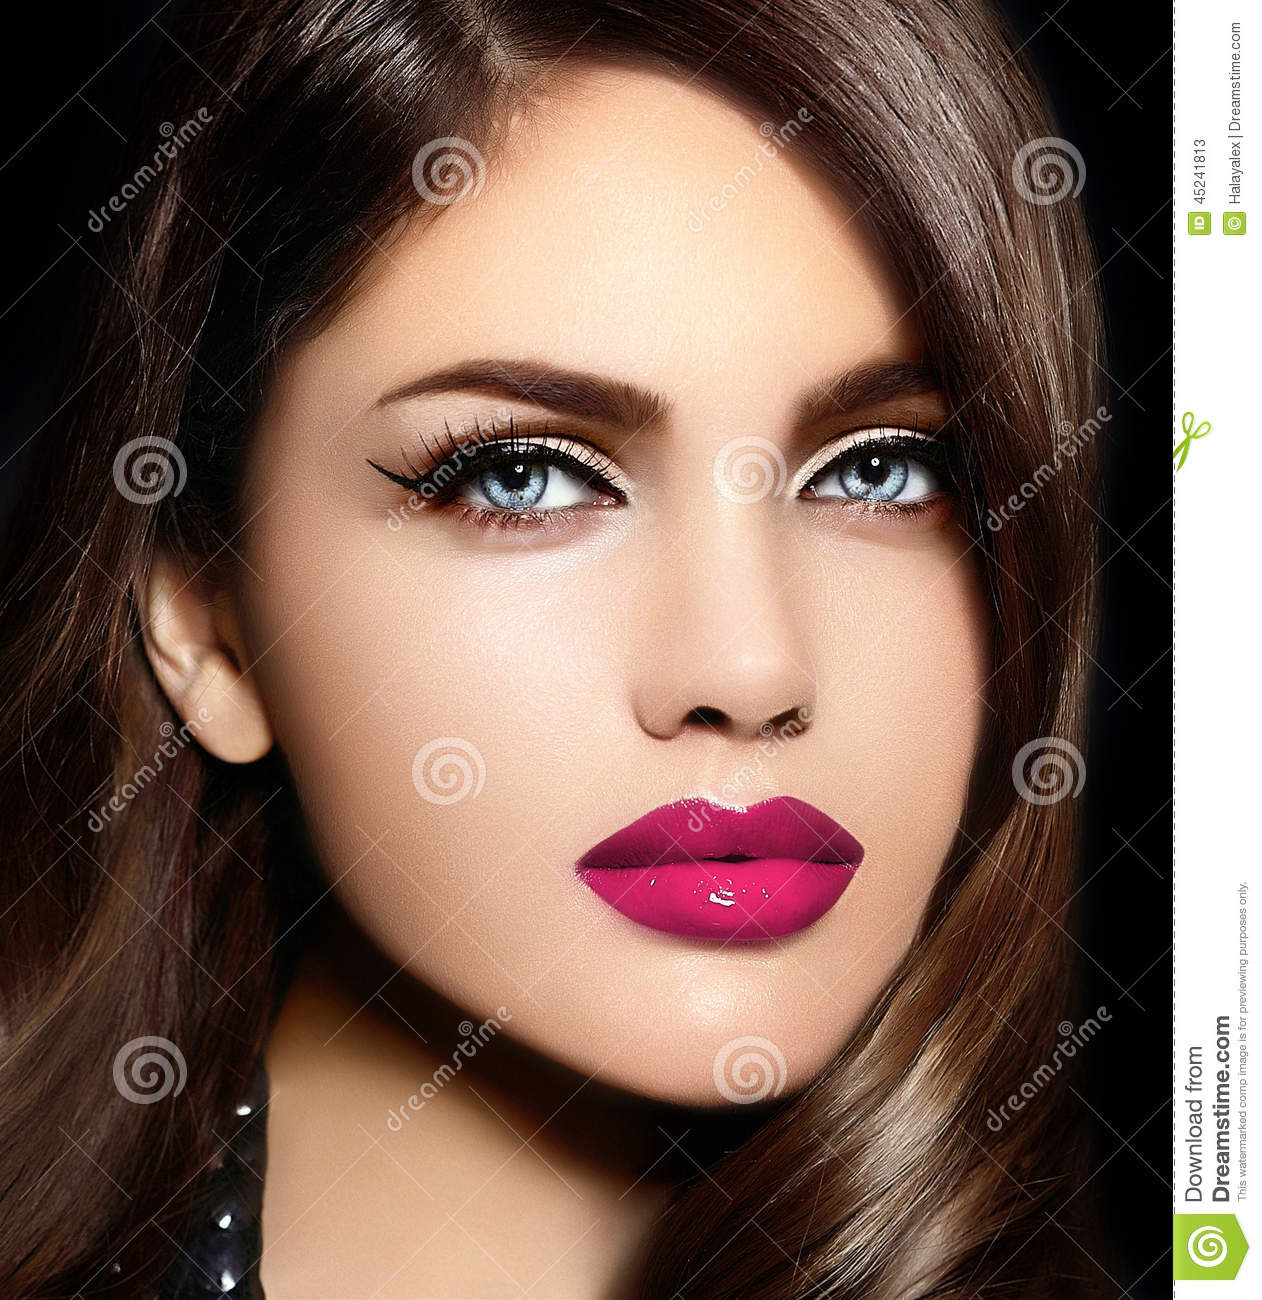 Woman with perfect lips